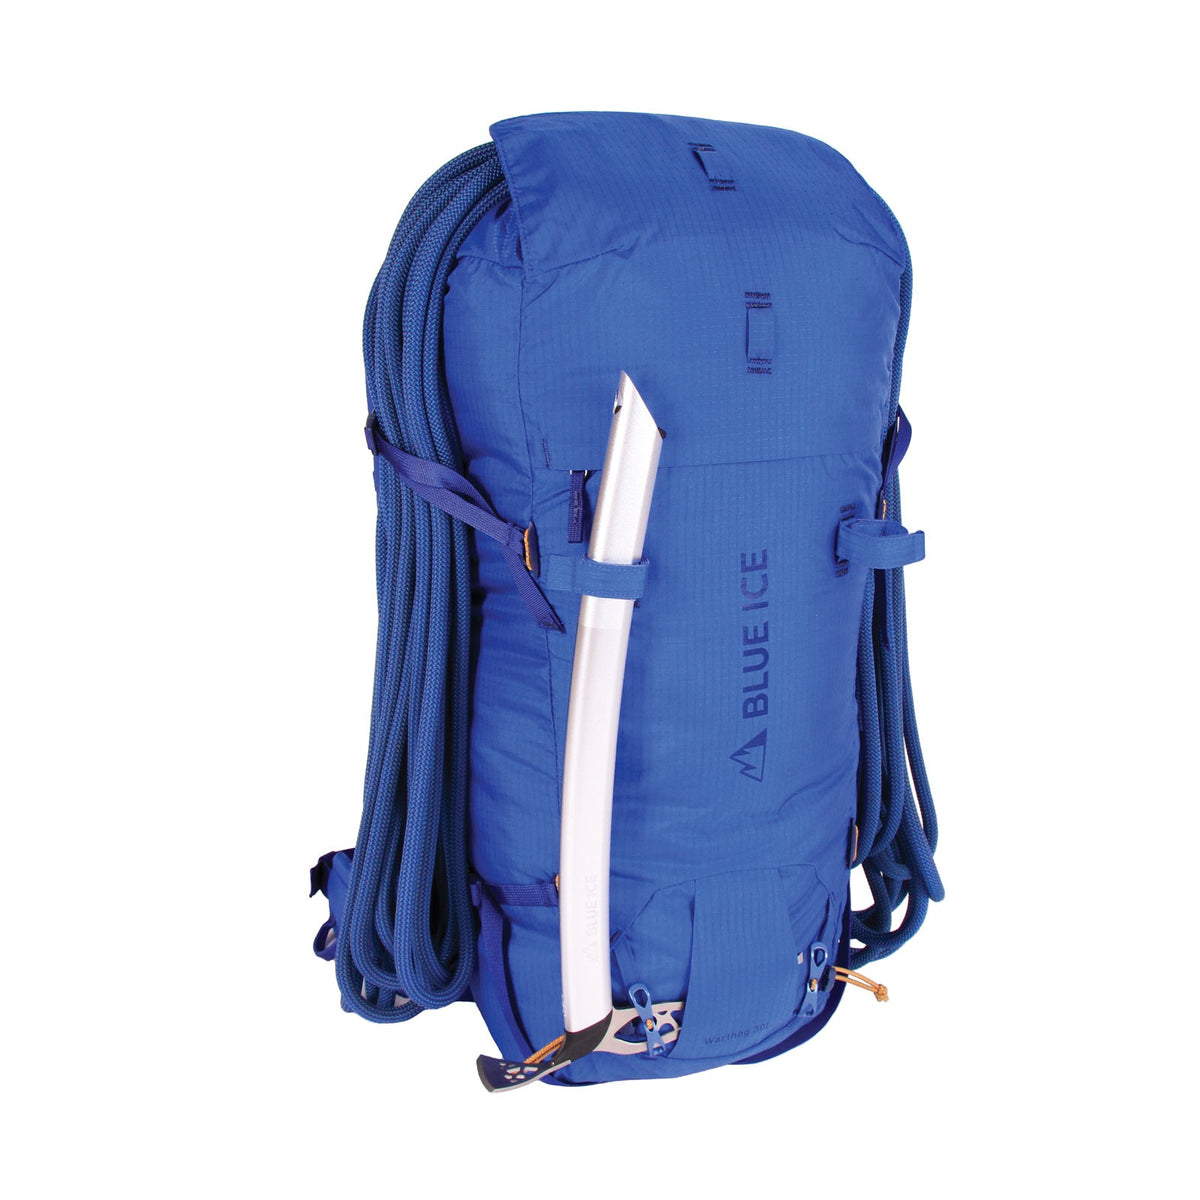 Blue Ice Warthog 30L rucksack, shown with climbing rope and ice pick